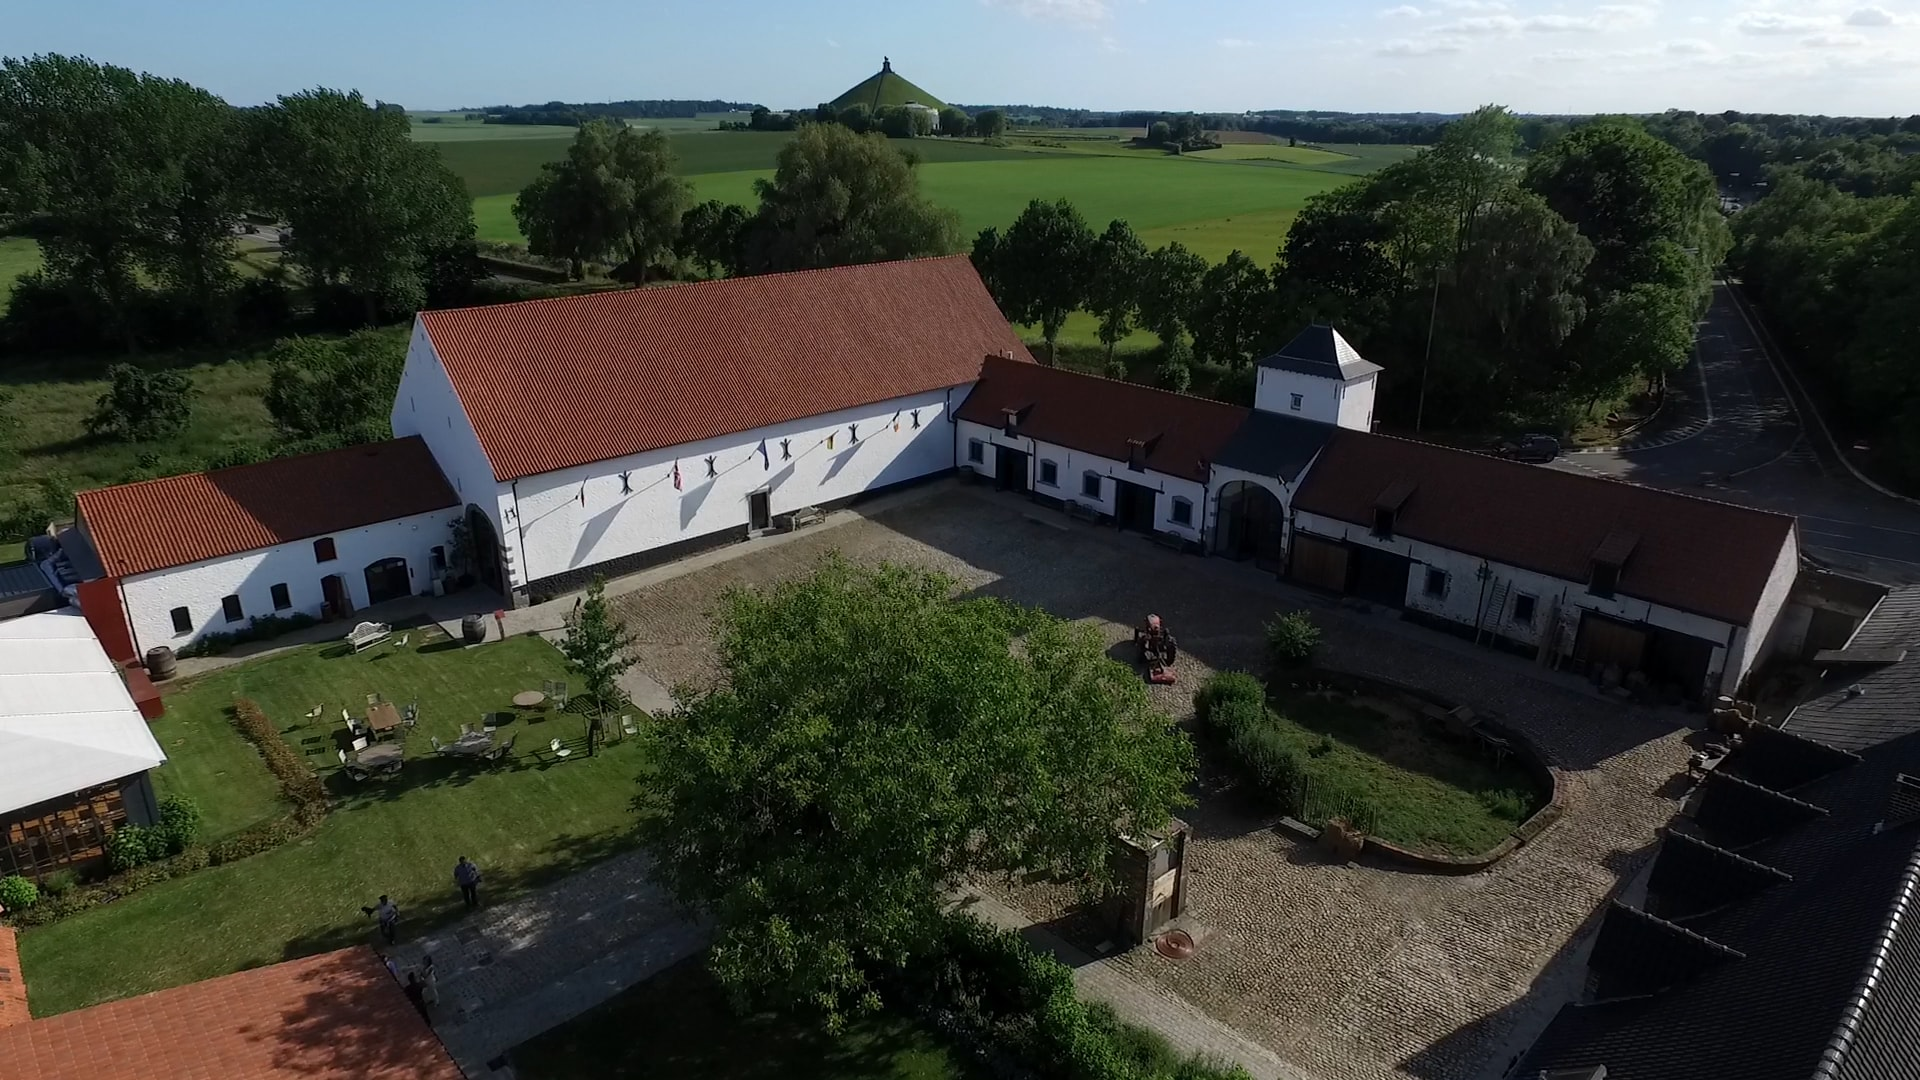 Ferme de Mont saint-jean : the place to be